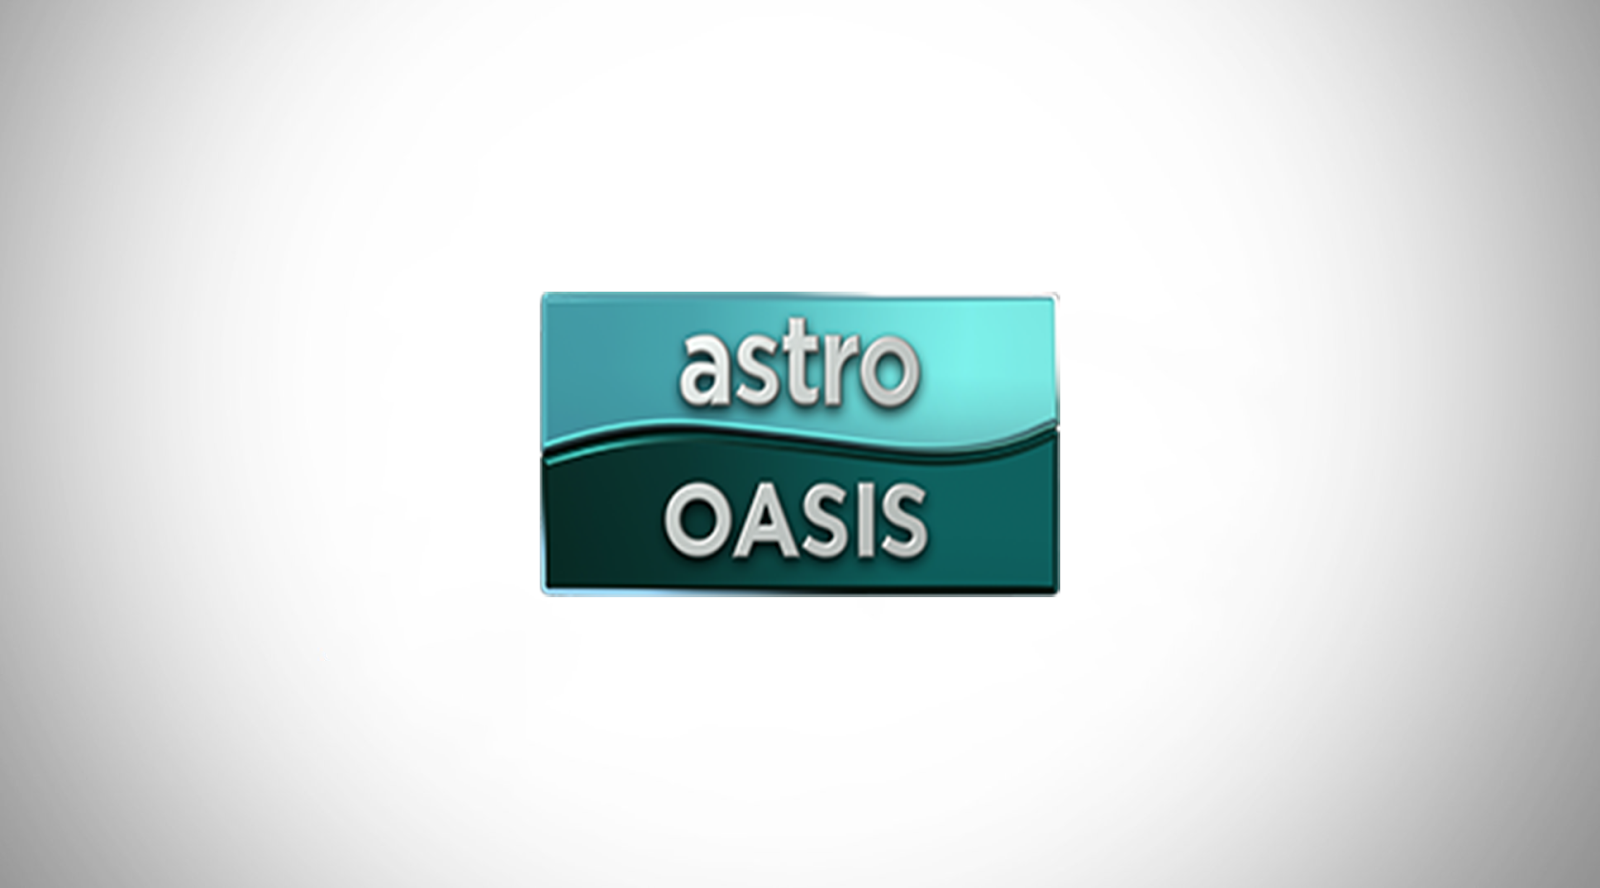 Astro Oasis HD Live Streaming